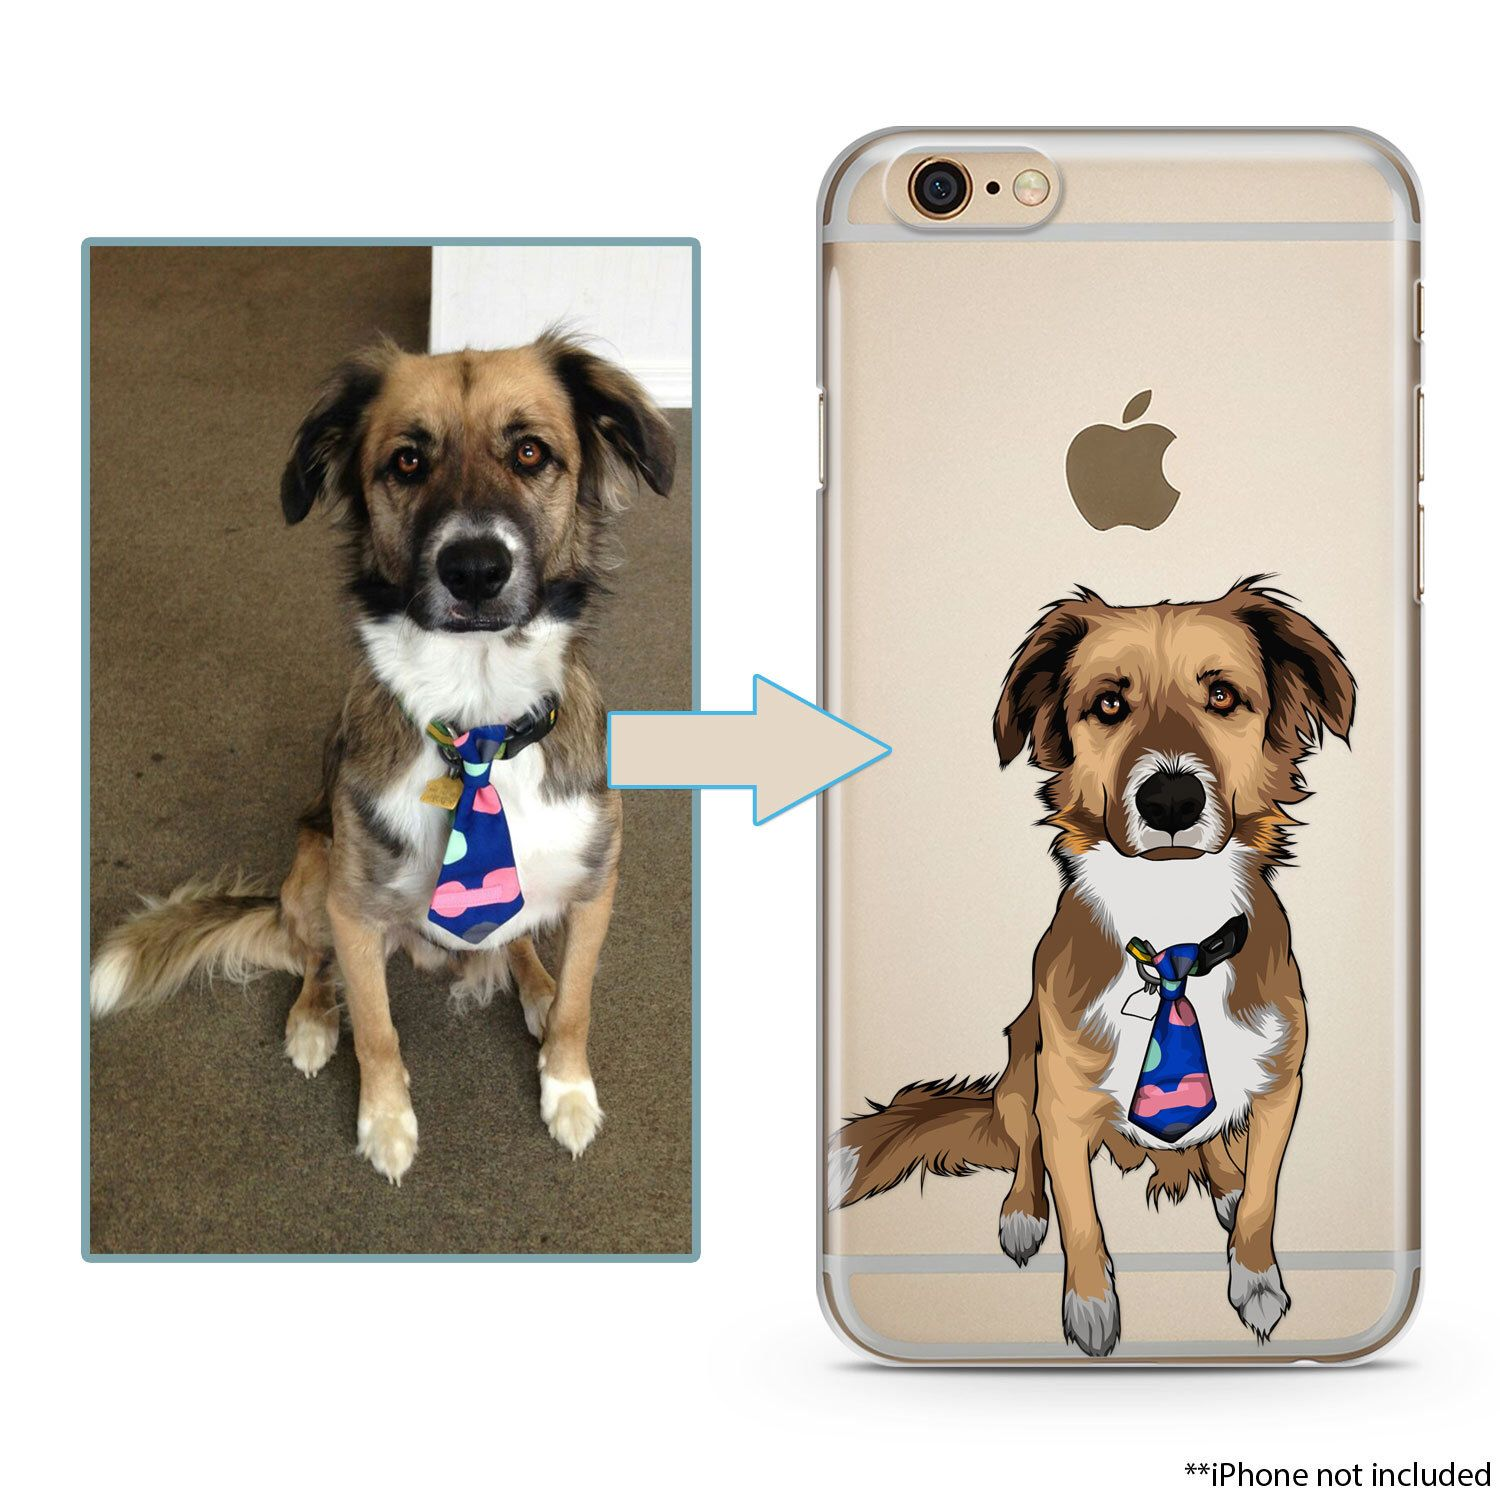 Pin By Gretchen Vaughn On Ipad Iphone Accessories Pinterest Case Xr Spigen Anti Shock With Card Slot Slim Armor Cs Casing Black Custom Illustrated Dog Hand Drawn Dogs Image Illustration